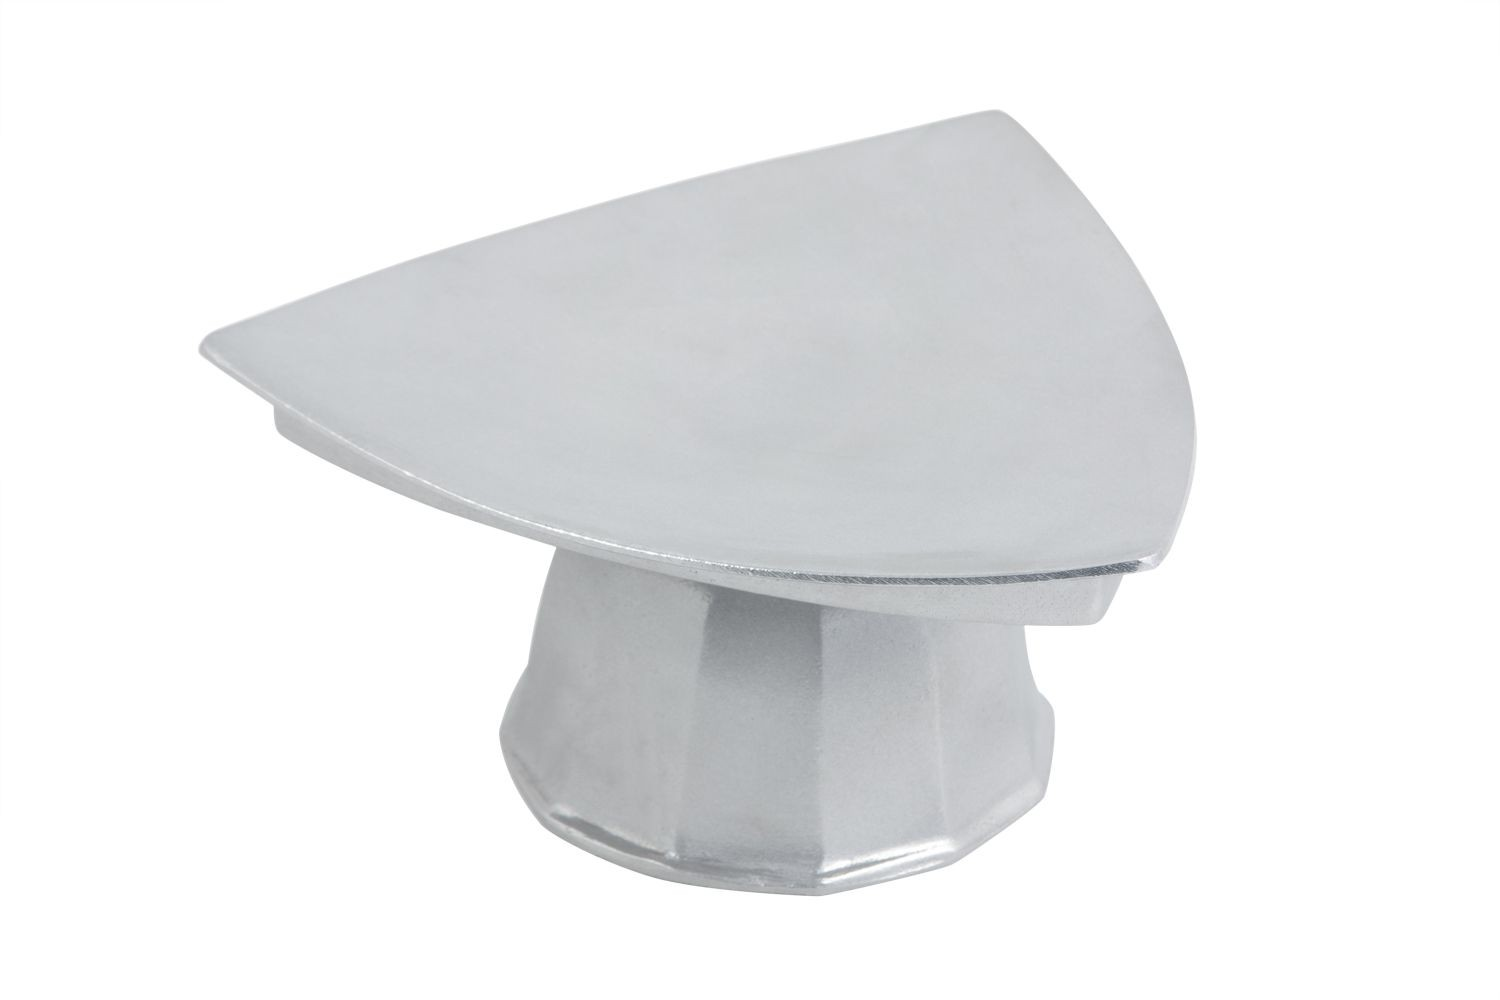 Bon Chef 90809106P Pedestal Triangle Plate, Pewter Glo 11 1/2""